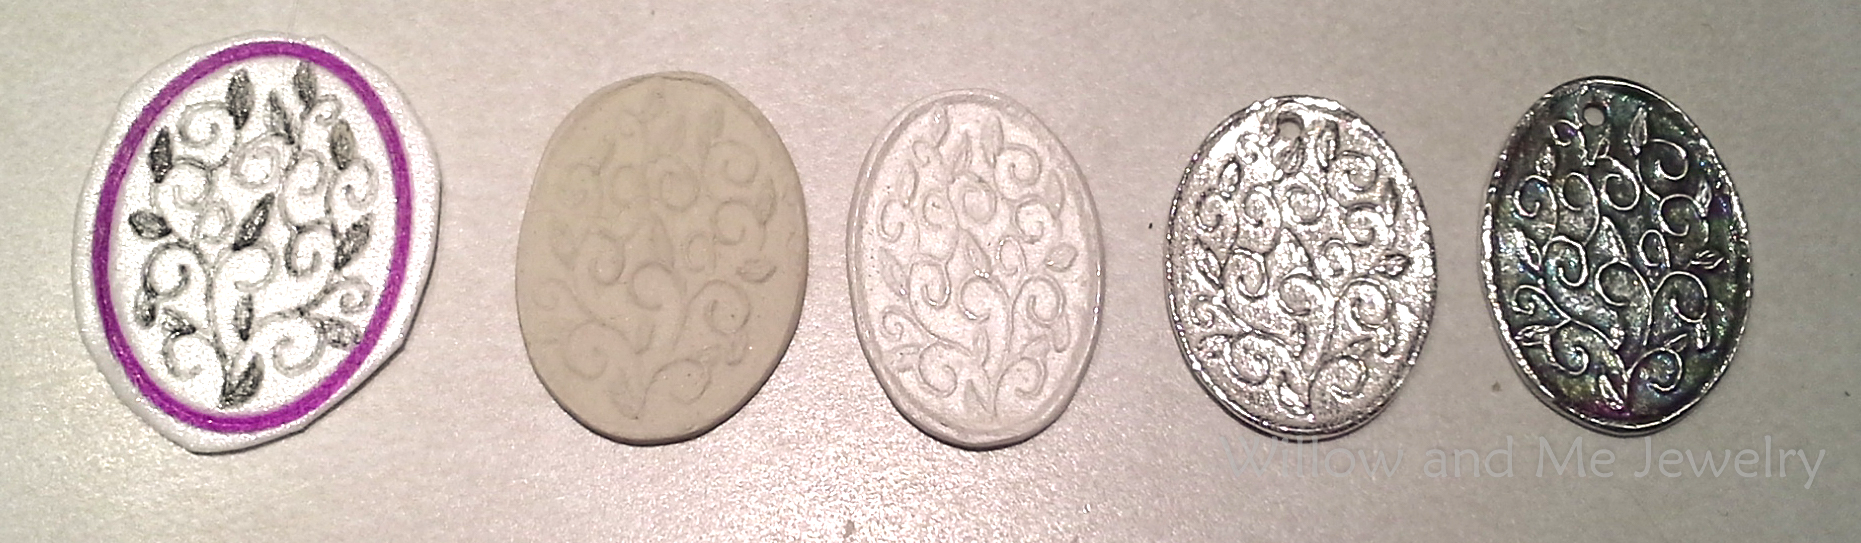 "The progression of work with PMC, from left to right:  A hand drawn texture; clay in the pre-fired ""greenware"" state; fired clay just out of the kiln; after tumbling; after antiquing with liver of sulfur."